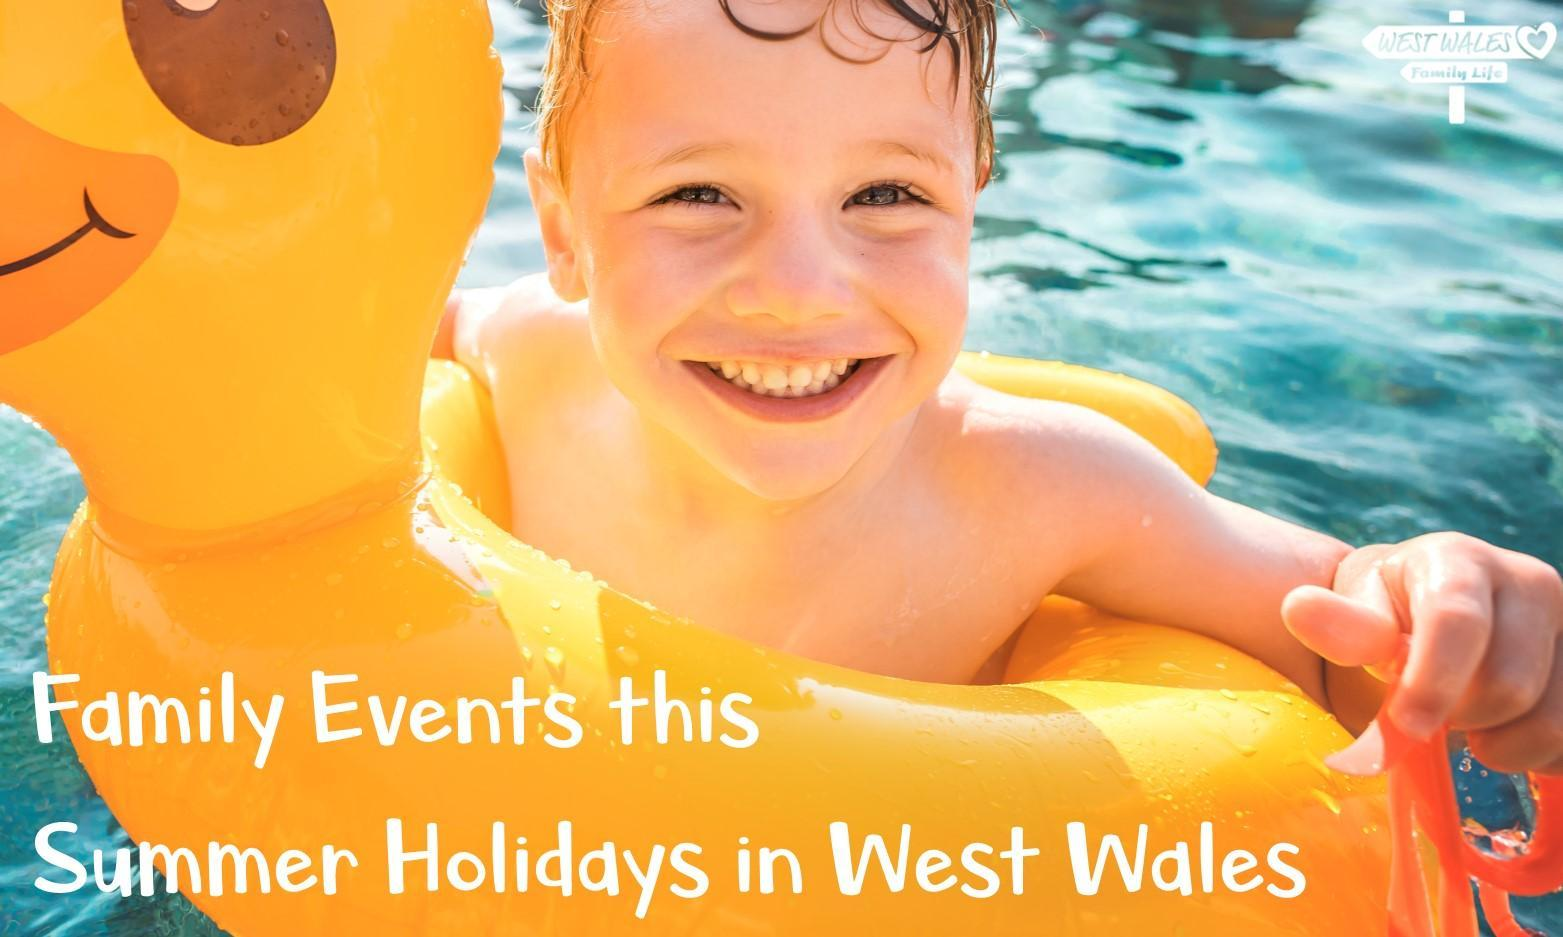 Family Events this Summer Holidays in West Wales